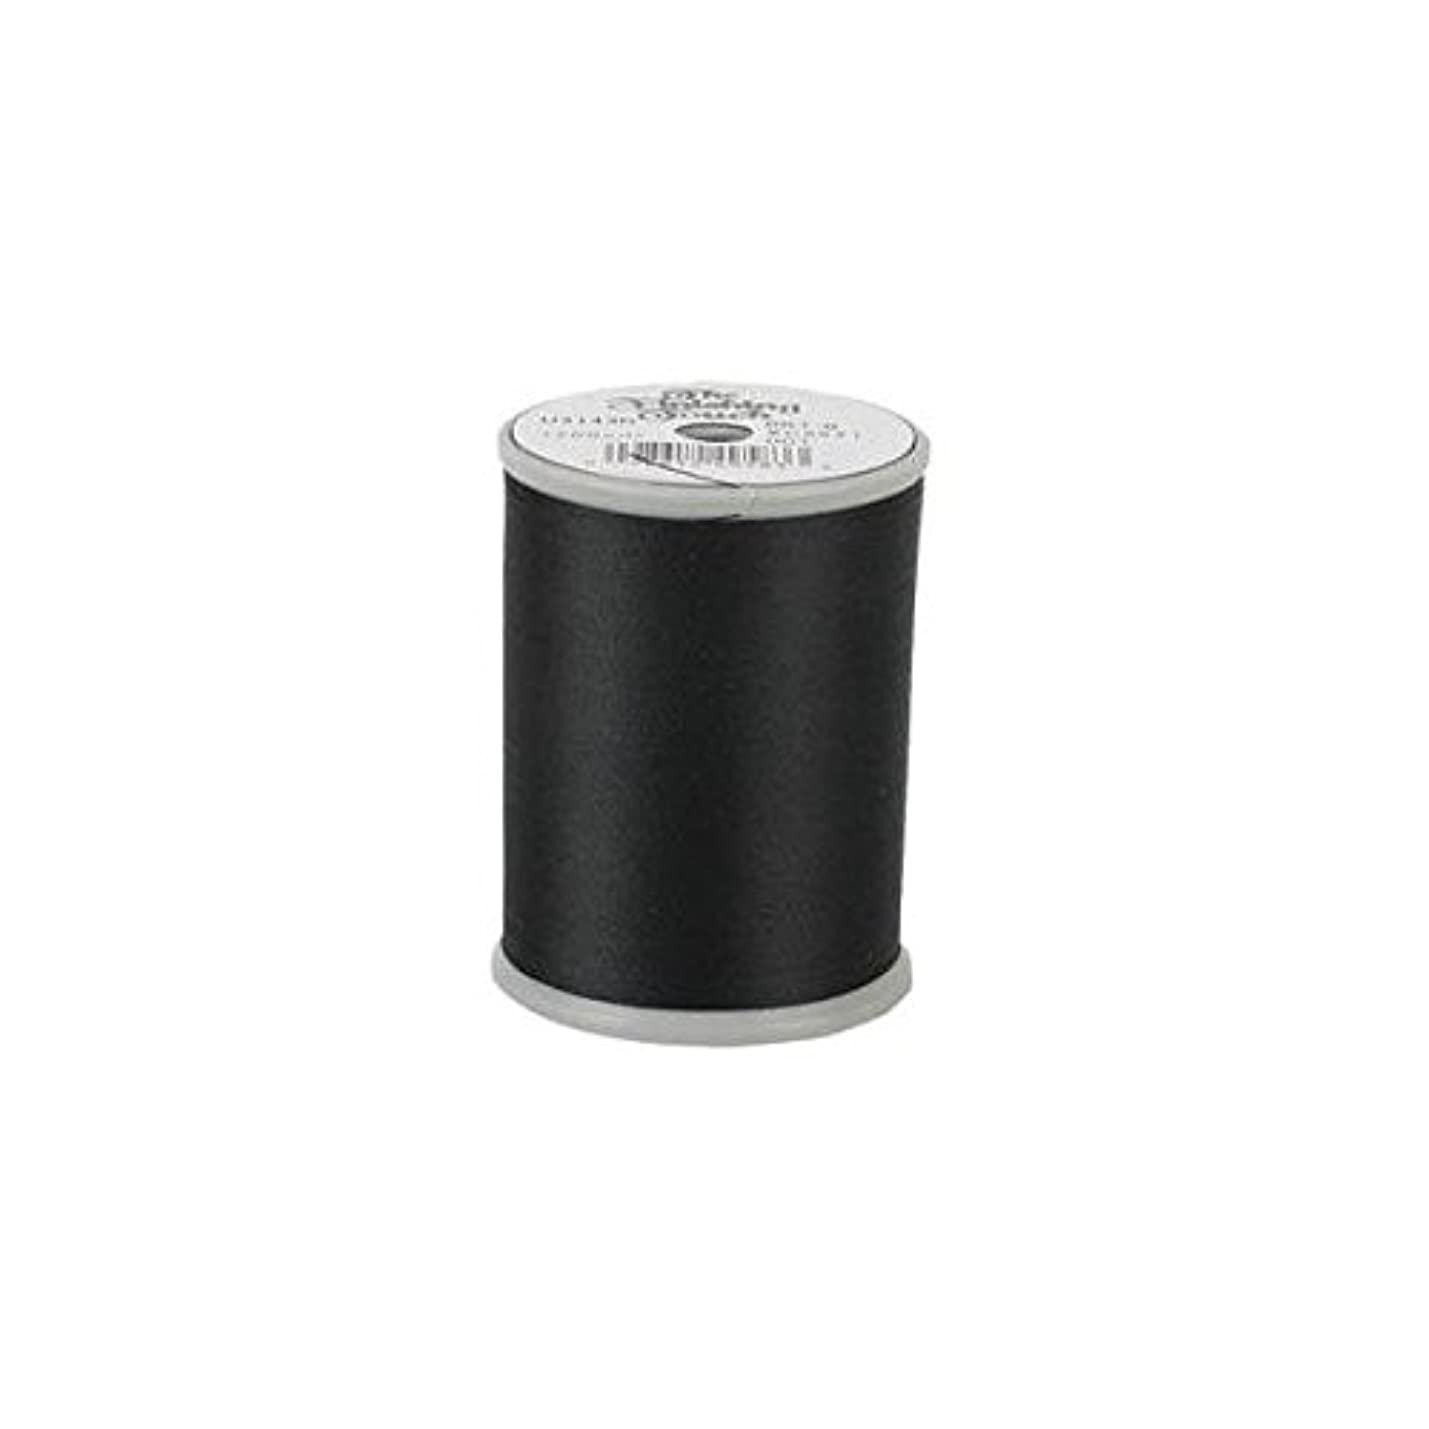 The Finishing Touch Embroidery & Sewing Bobbin Thread 1200yds. 100% Polyester 60wt. Black 5 Spools unigpjnwborpo523